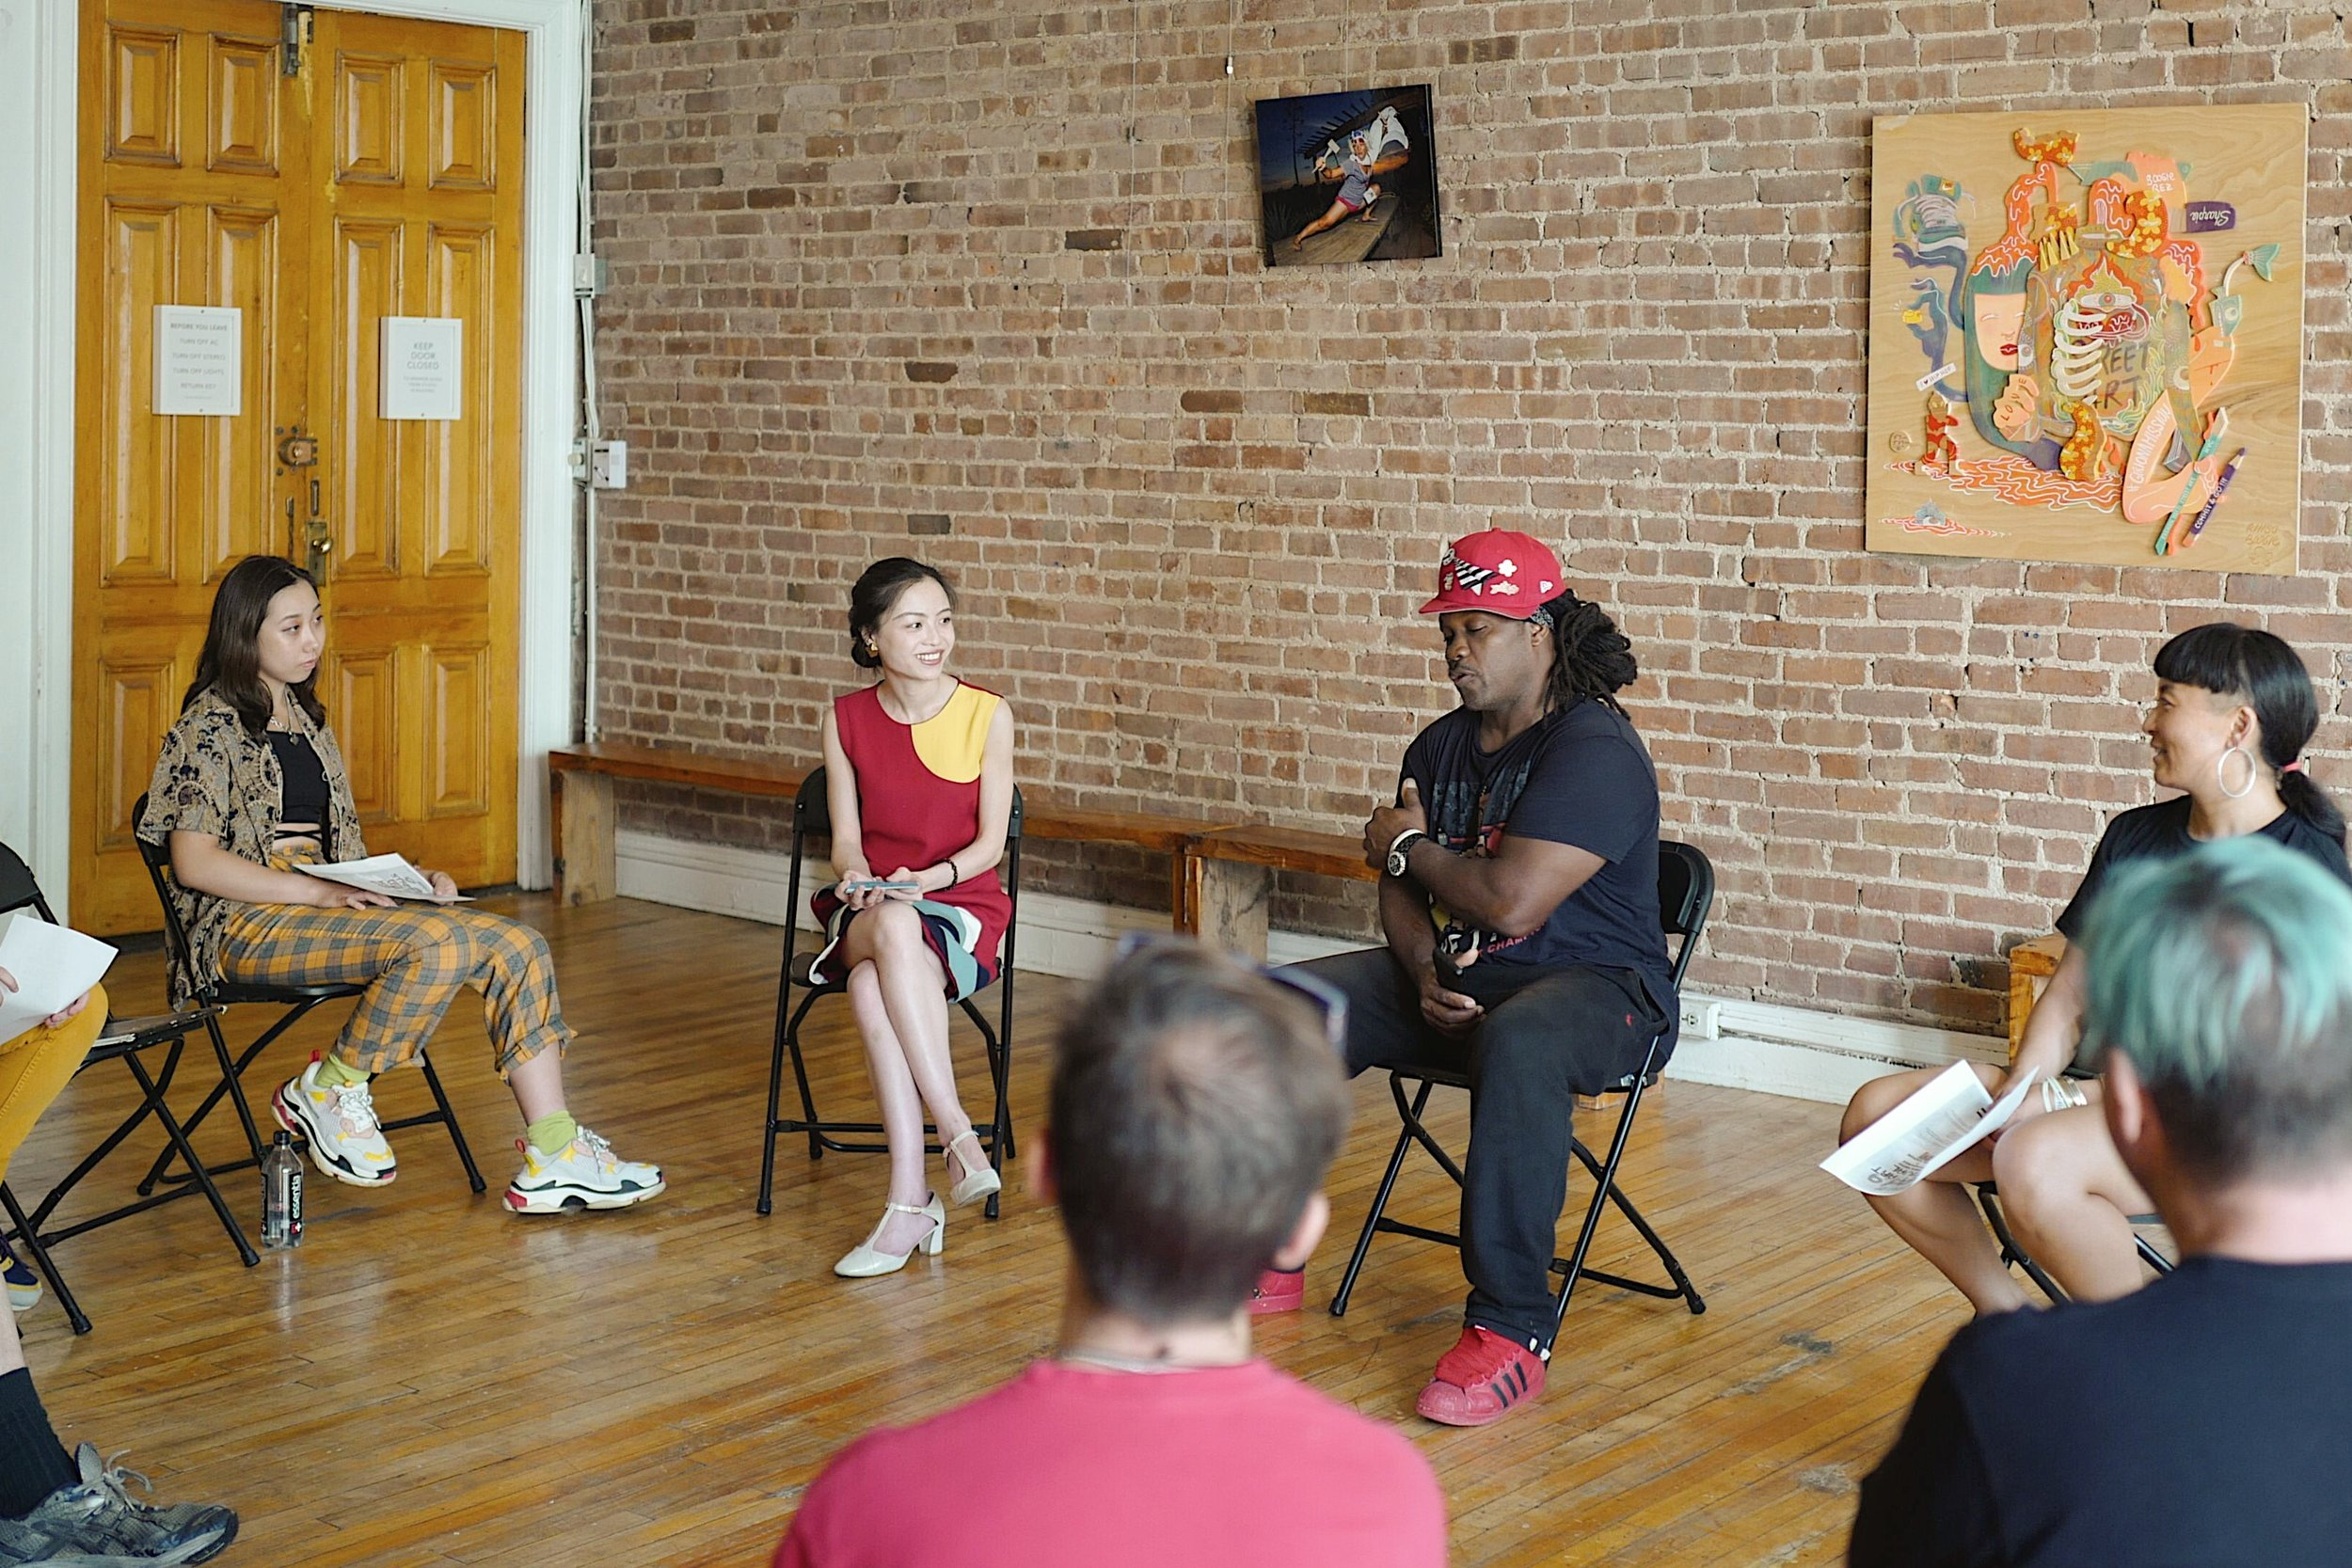 Q&A with BoogieRez, here artist Rezones answering one of the questions.